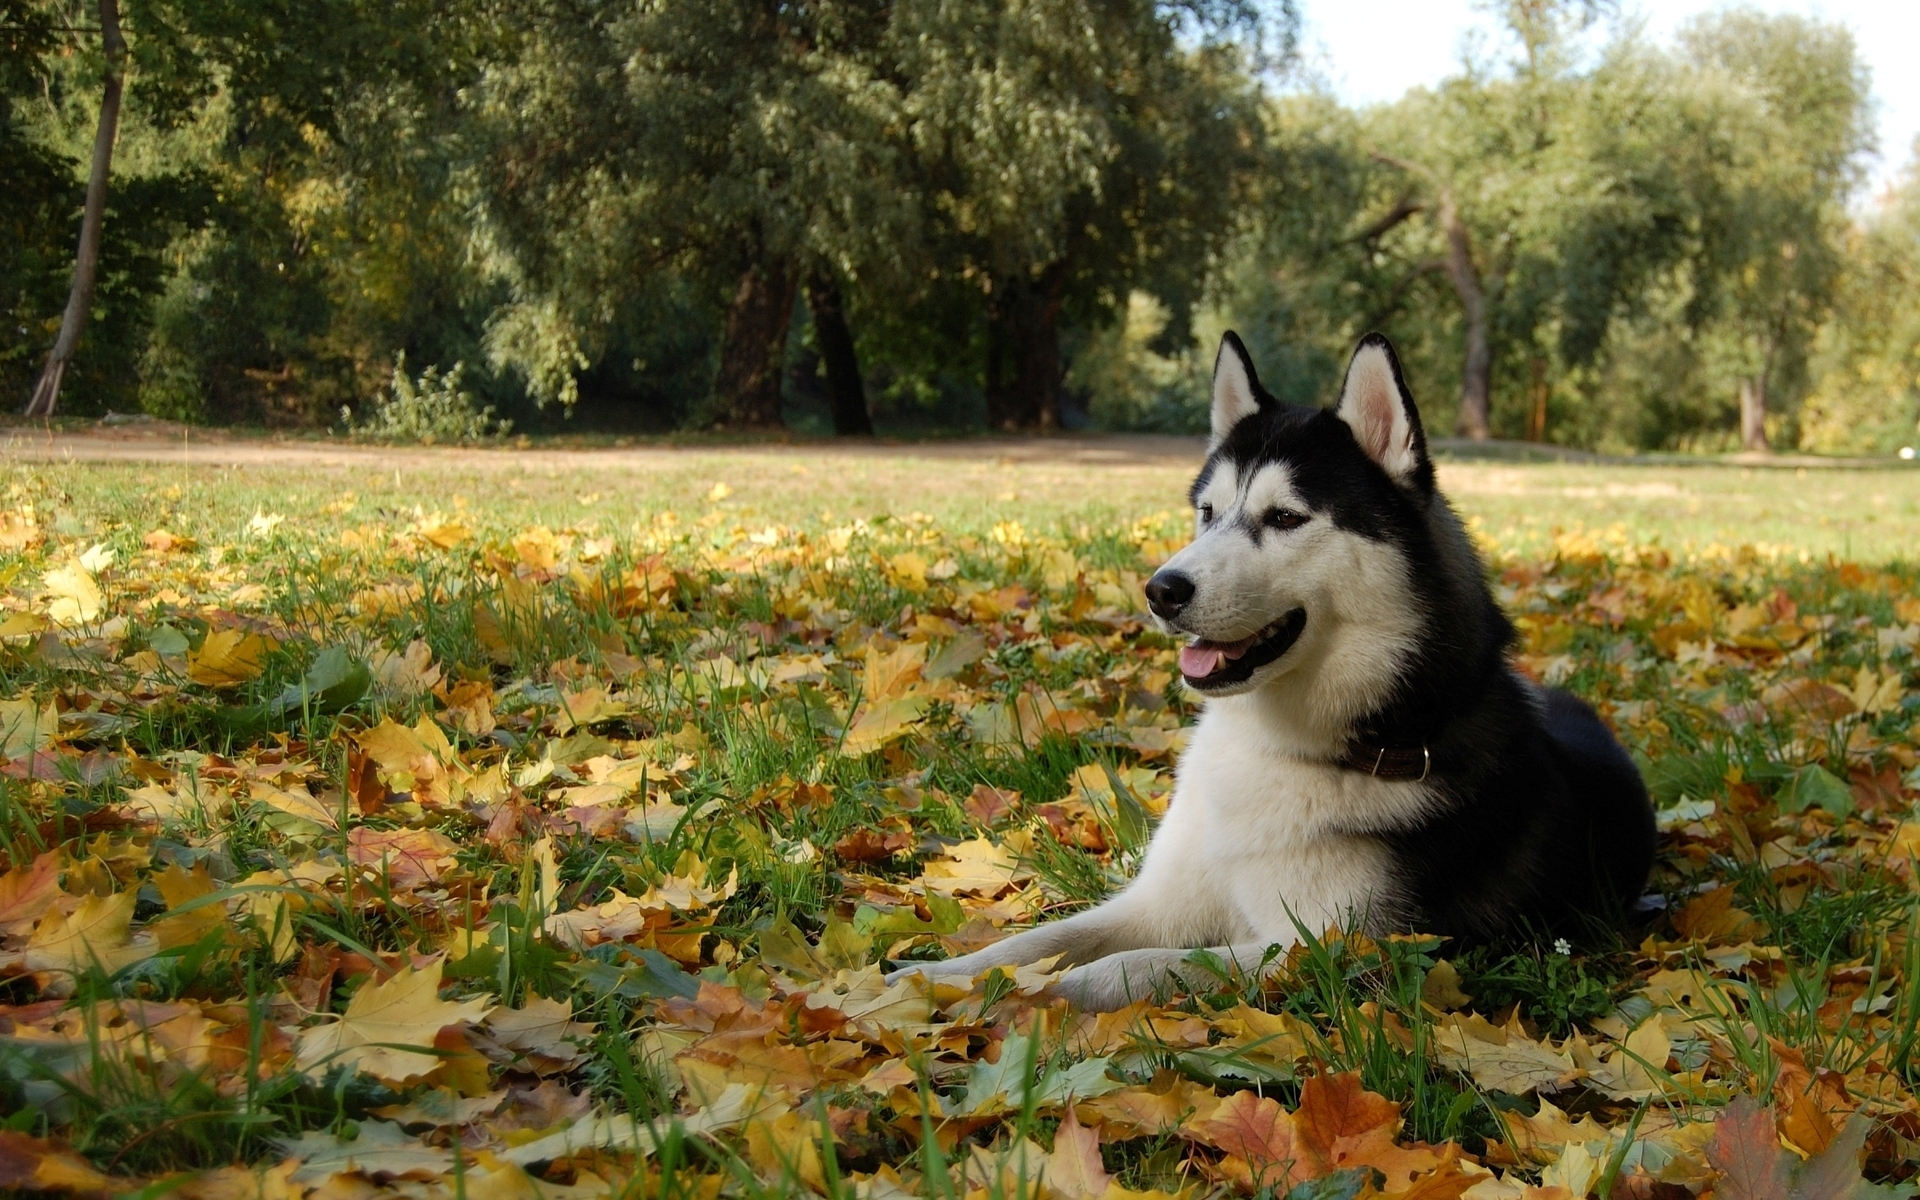 28858 download wallpaper Animals, Dogs screensavers and pictures for free